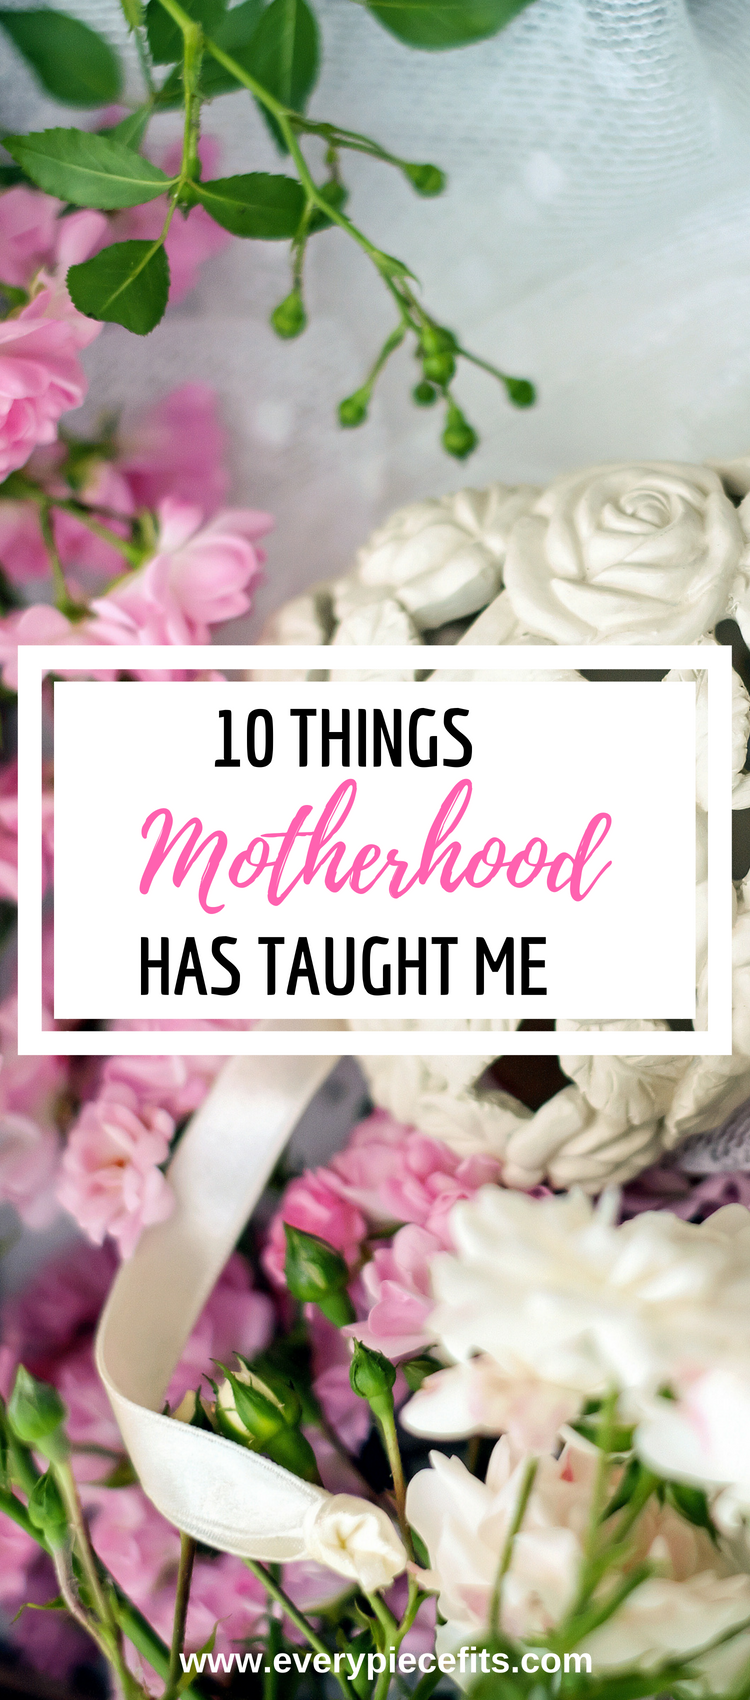 10 Things Motherhood has Taught Me - EveryPieceFits.com.png